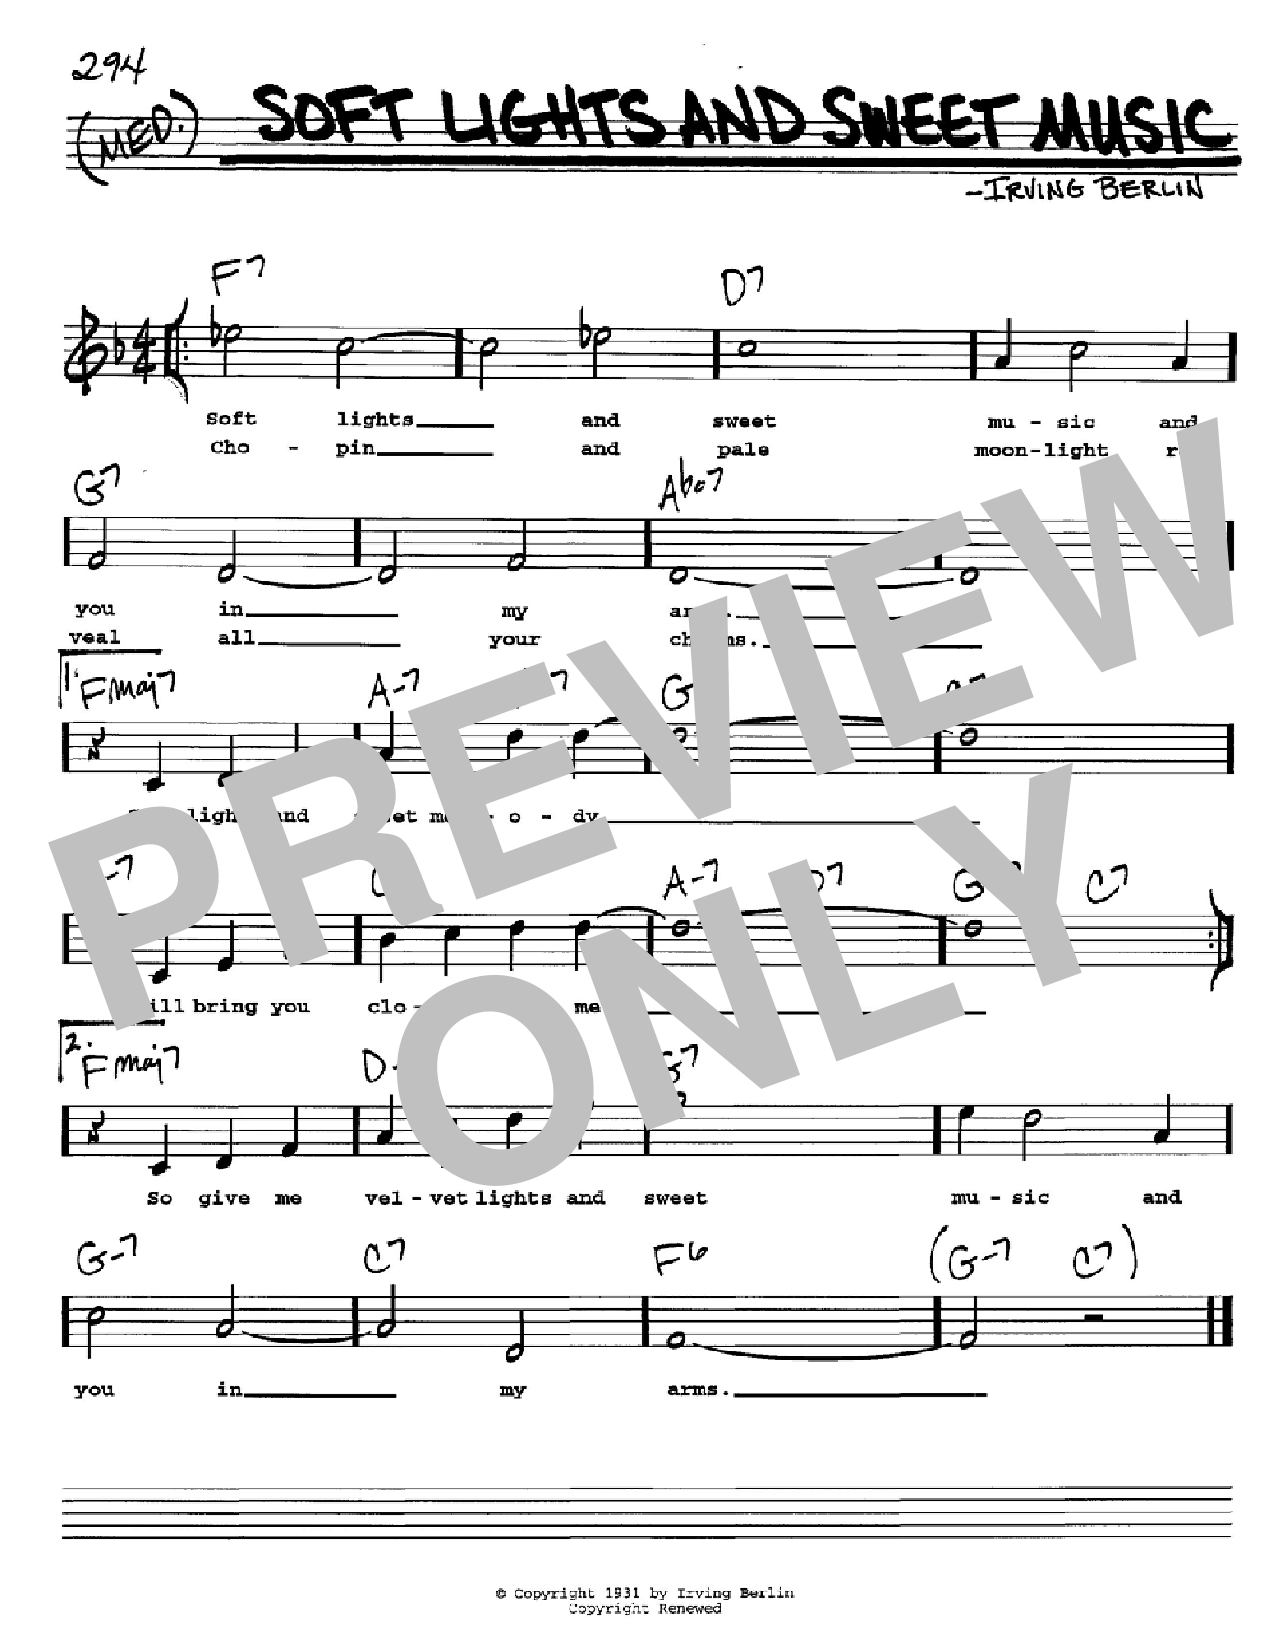 Soft Lights And Sweet Music Sheet Music